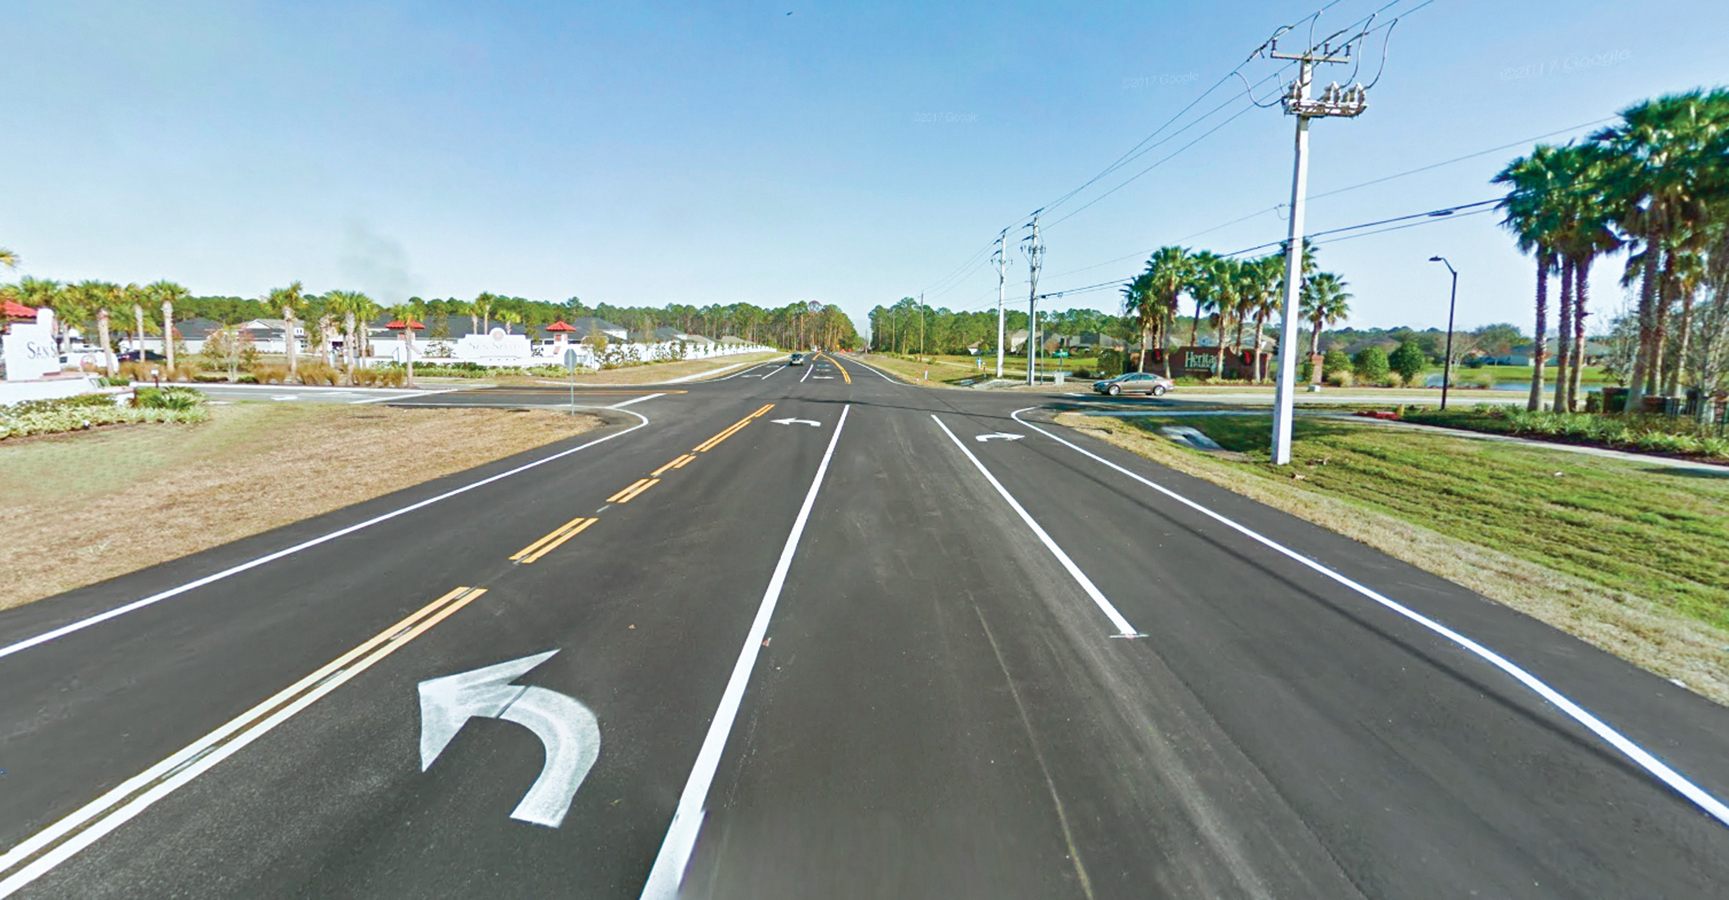 A road with 4 lanes and a subdivision on the left and palm trees surrounding it.